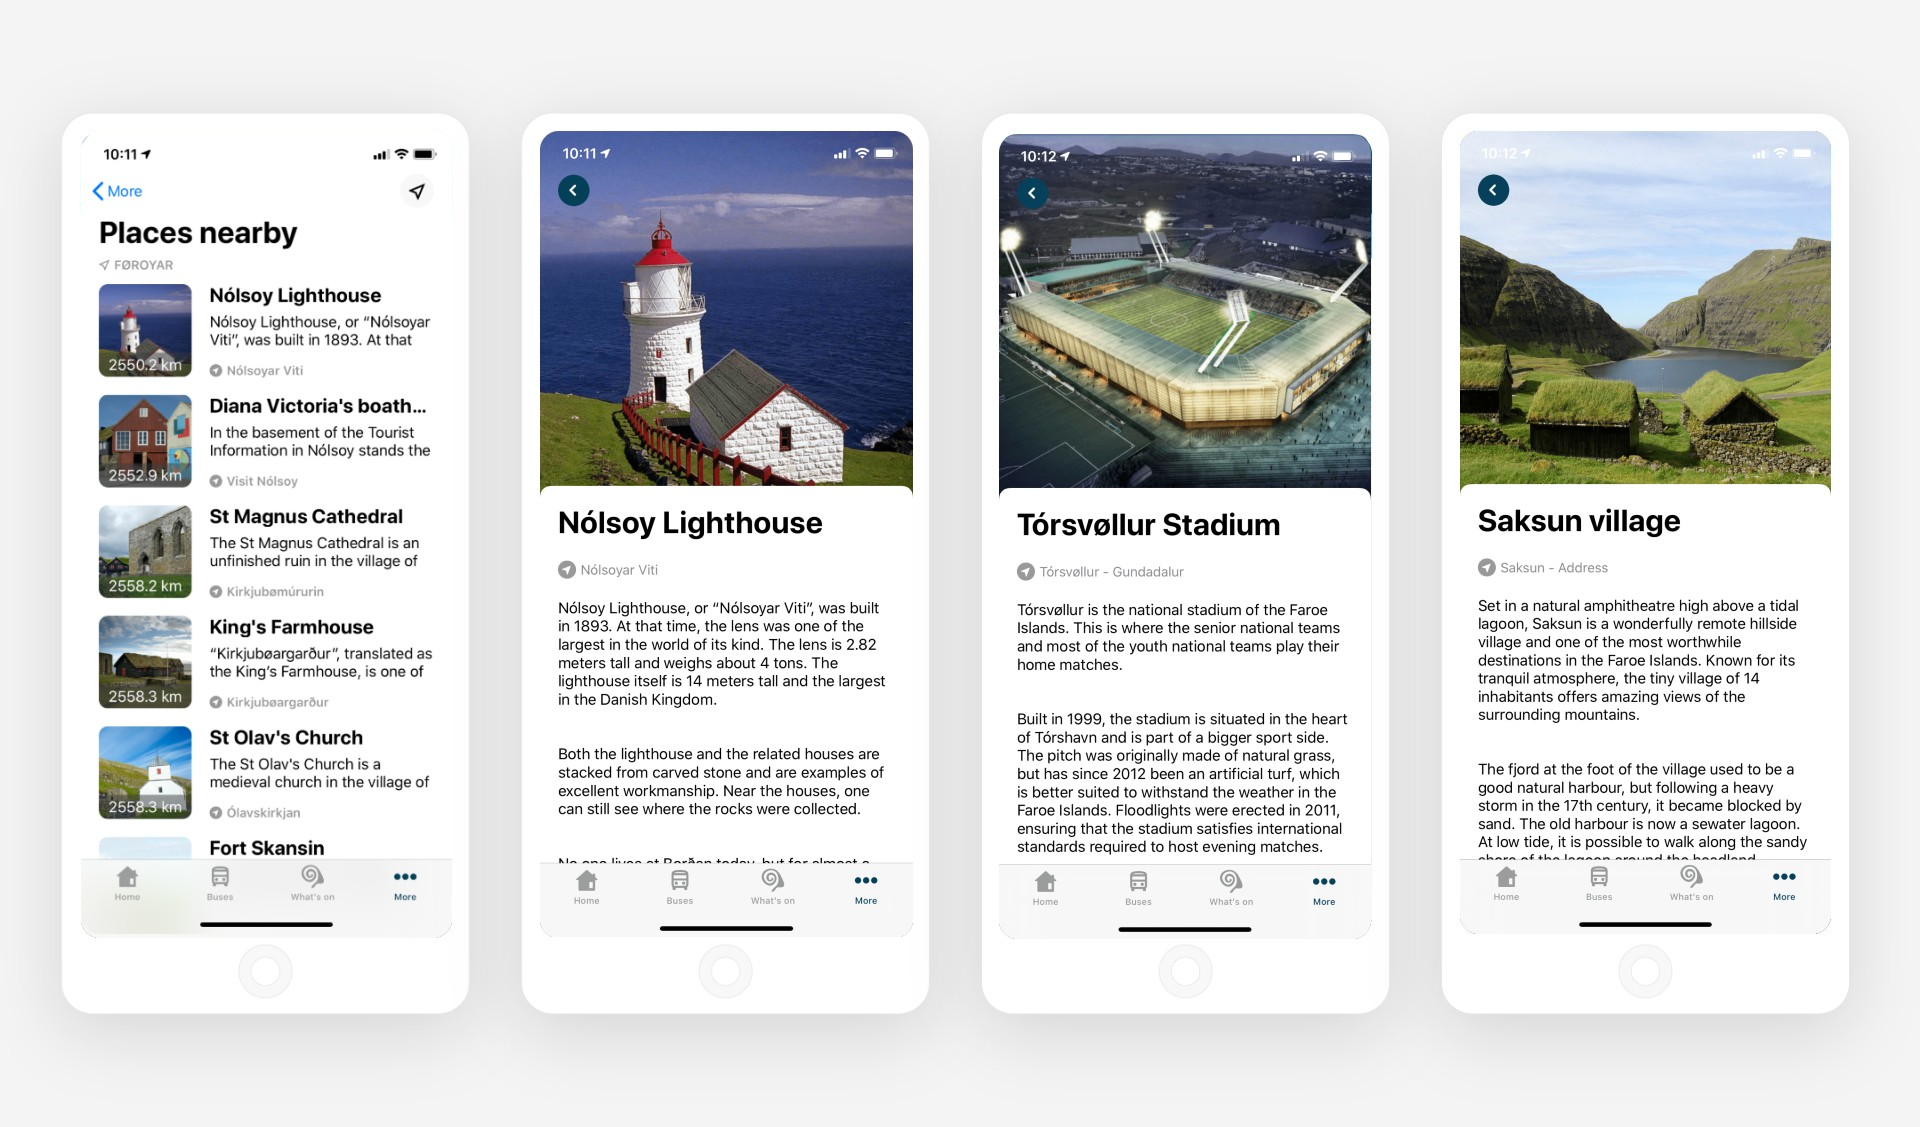 Campaigns on Sona app with points of interest in Faroe Islands